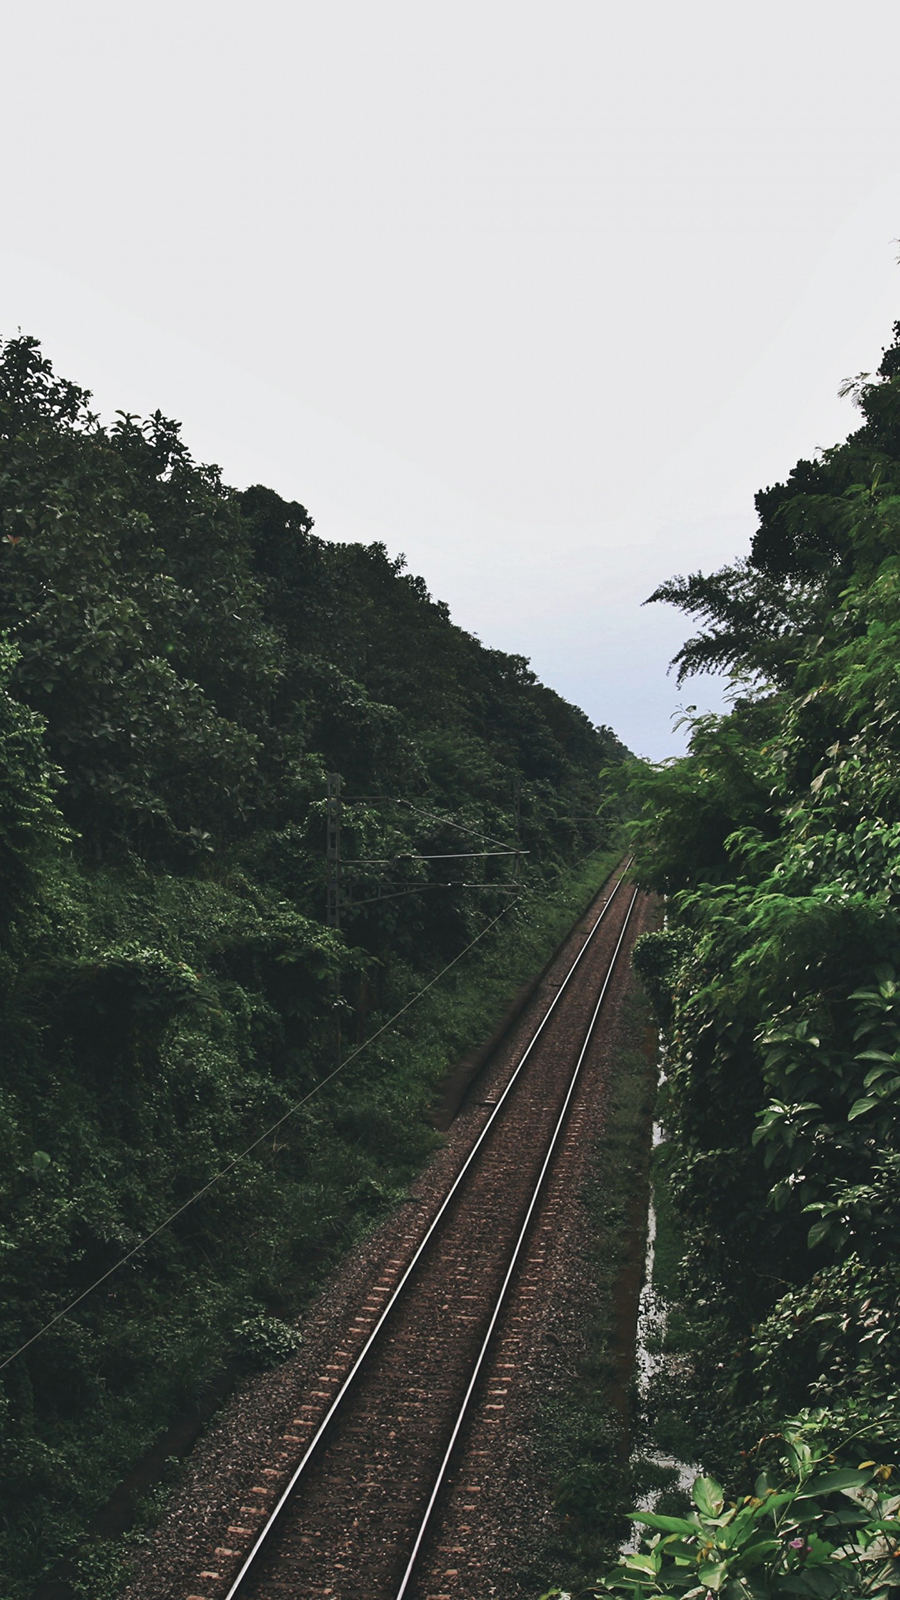 Railway Trees Road Full HD Wallpapers Download